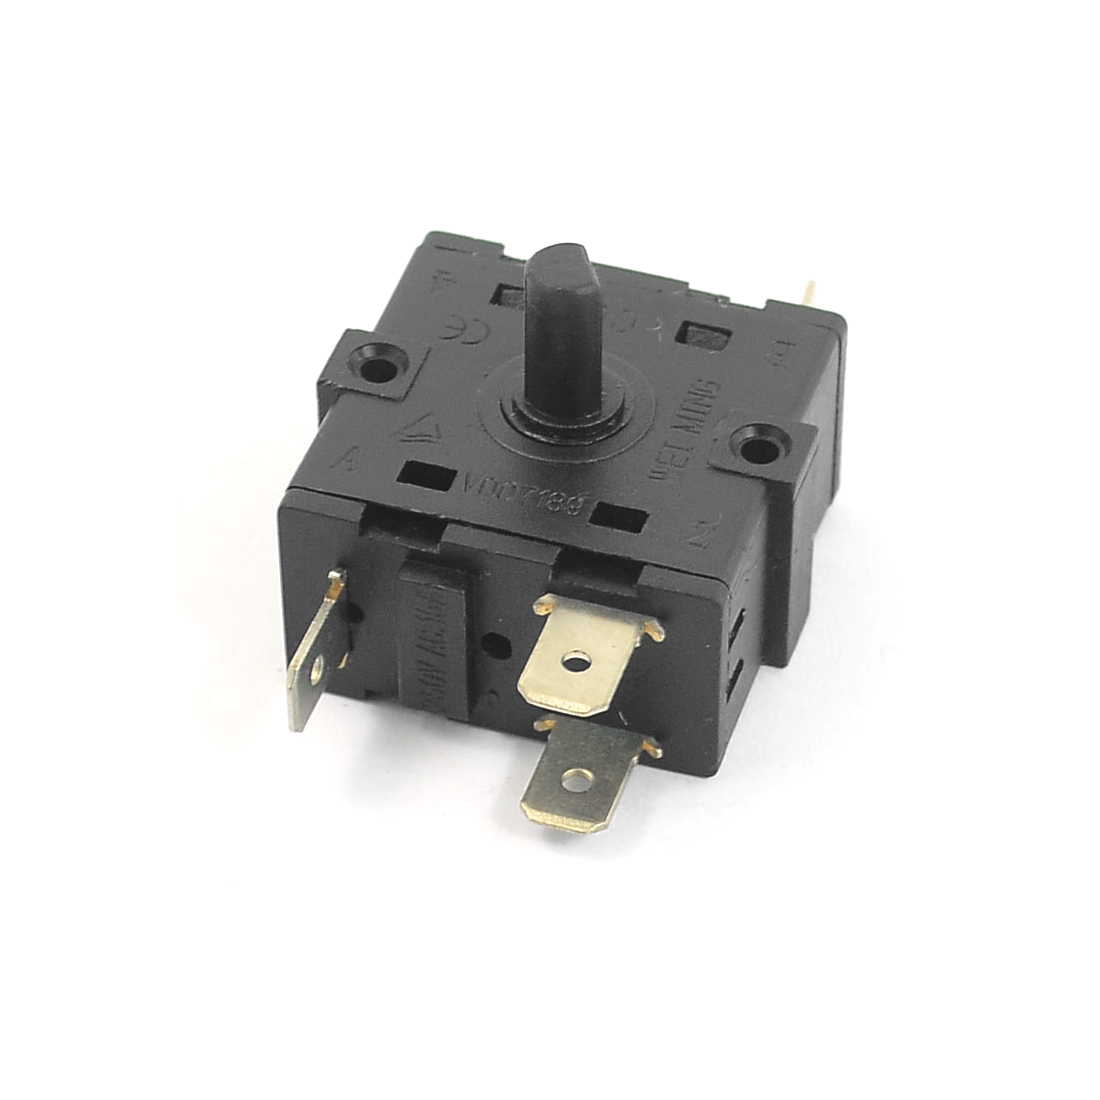 AC 250V 15A 5 Pins Rotary Switch Selector Replacement Black for Electric Room Heater